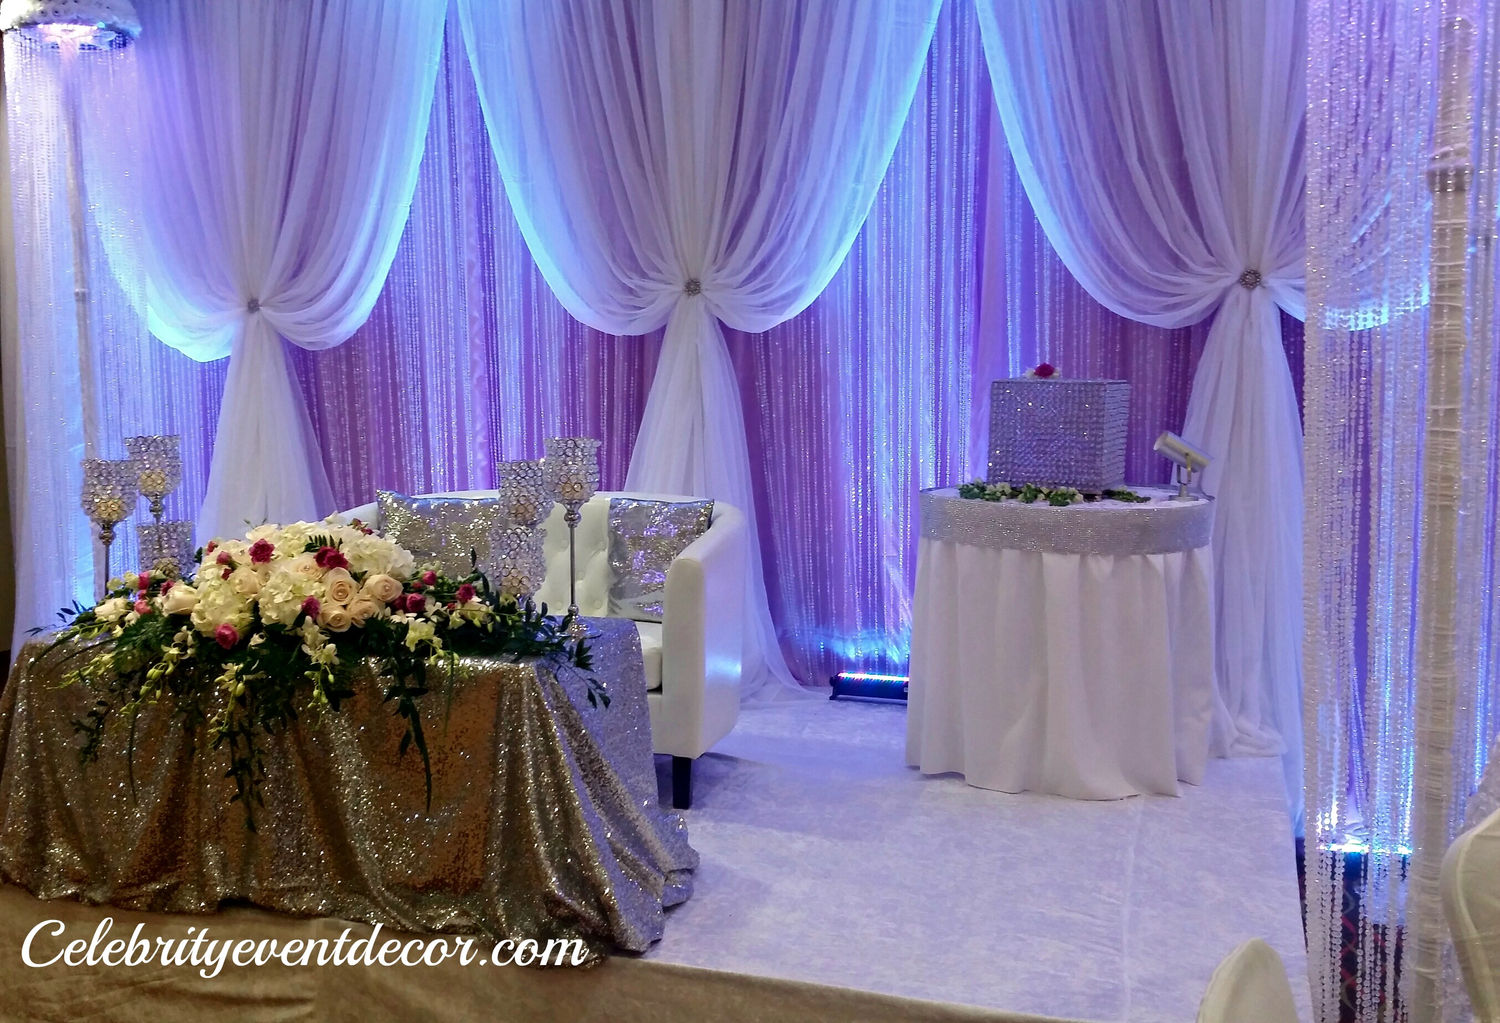 Celebrity event decor banquet hall jacksonville fl for Wedding event decorators